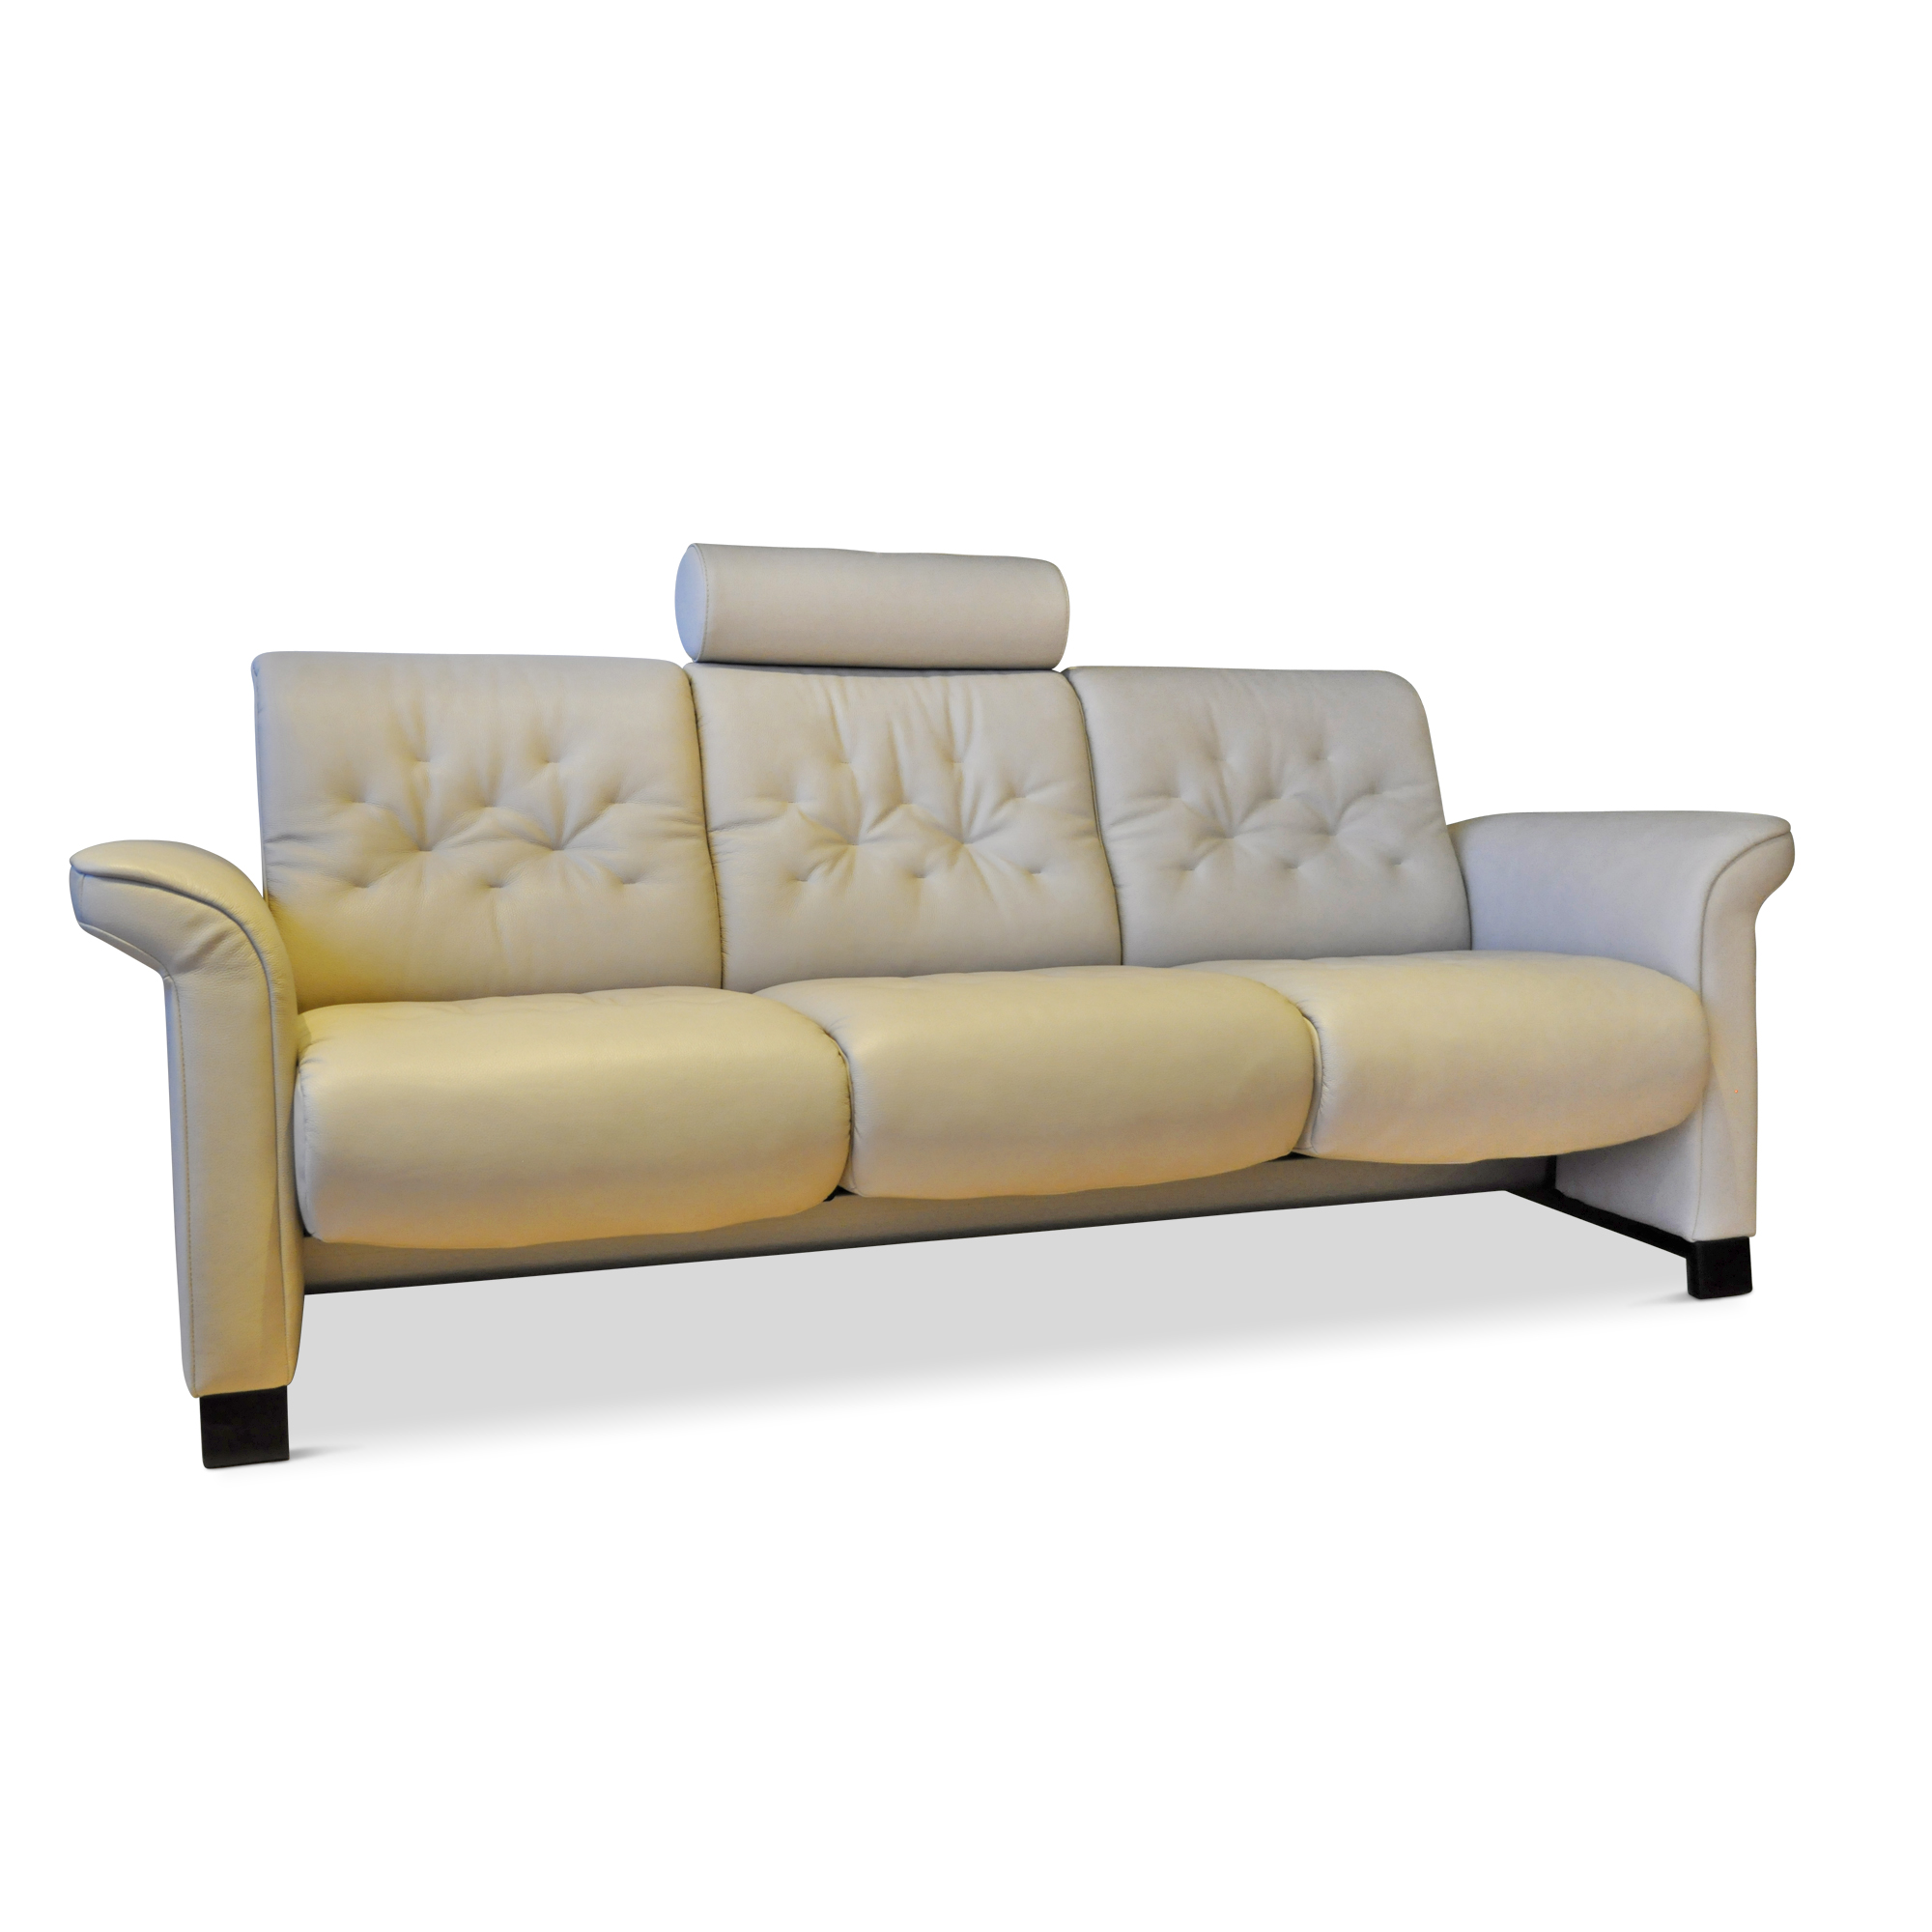 sofa metropolitan beige stressless sofas g nstig kaufen m belfirst. Black Bedroom Furniture Sets. Home Design Ideas